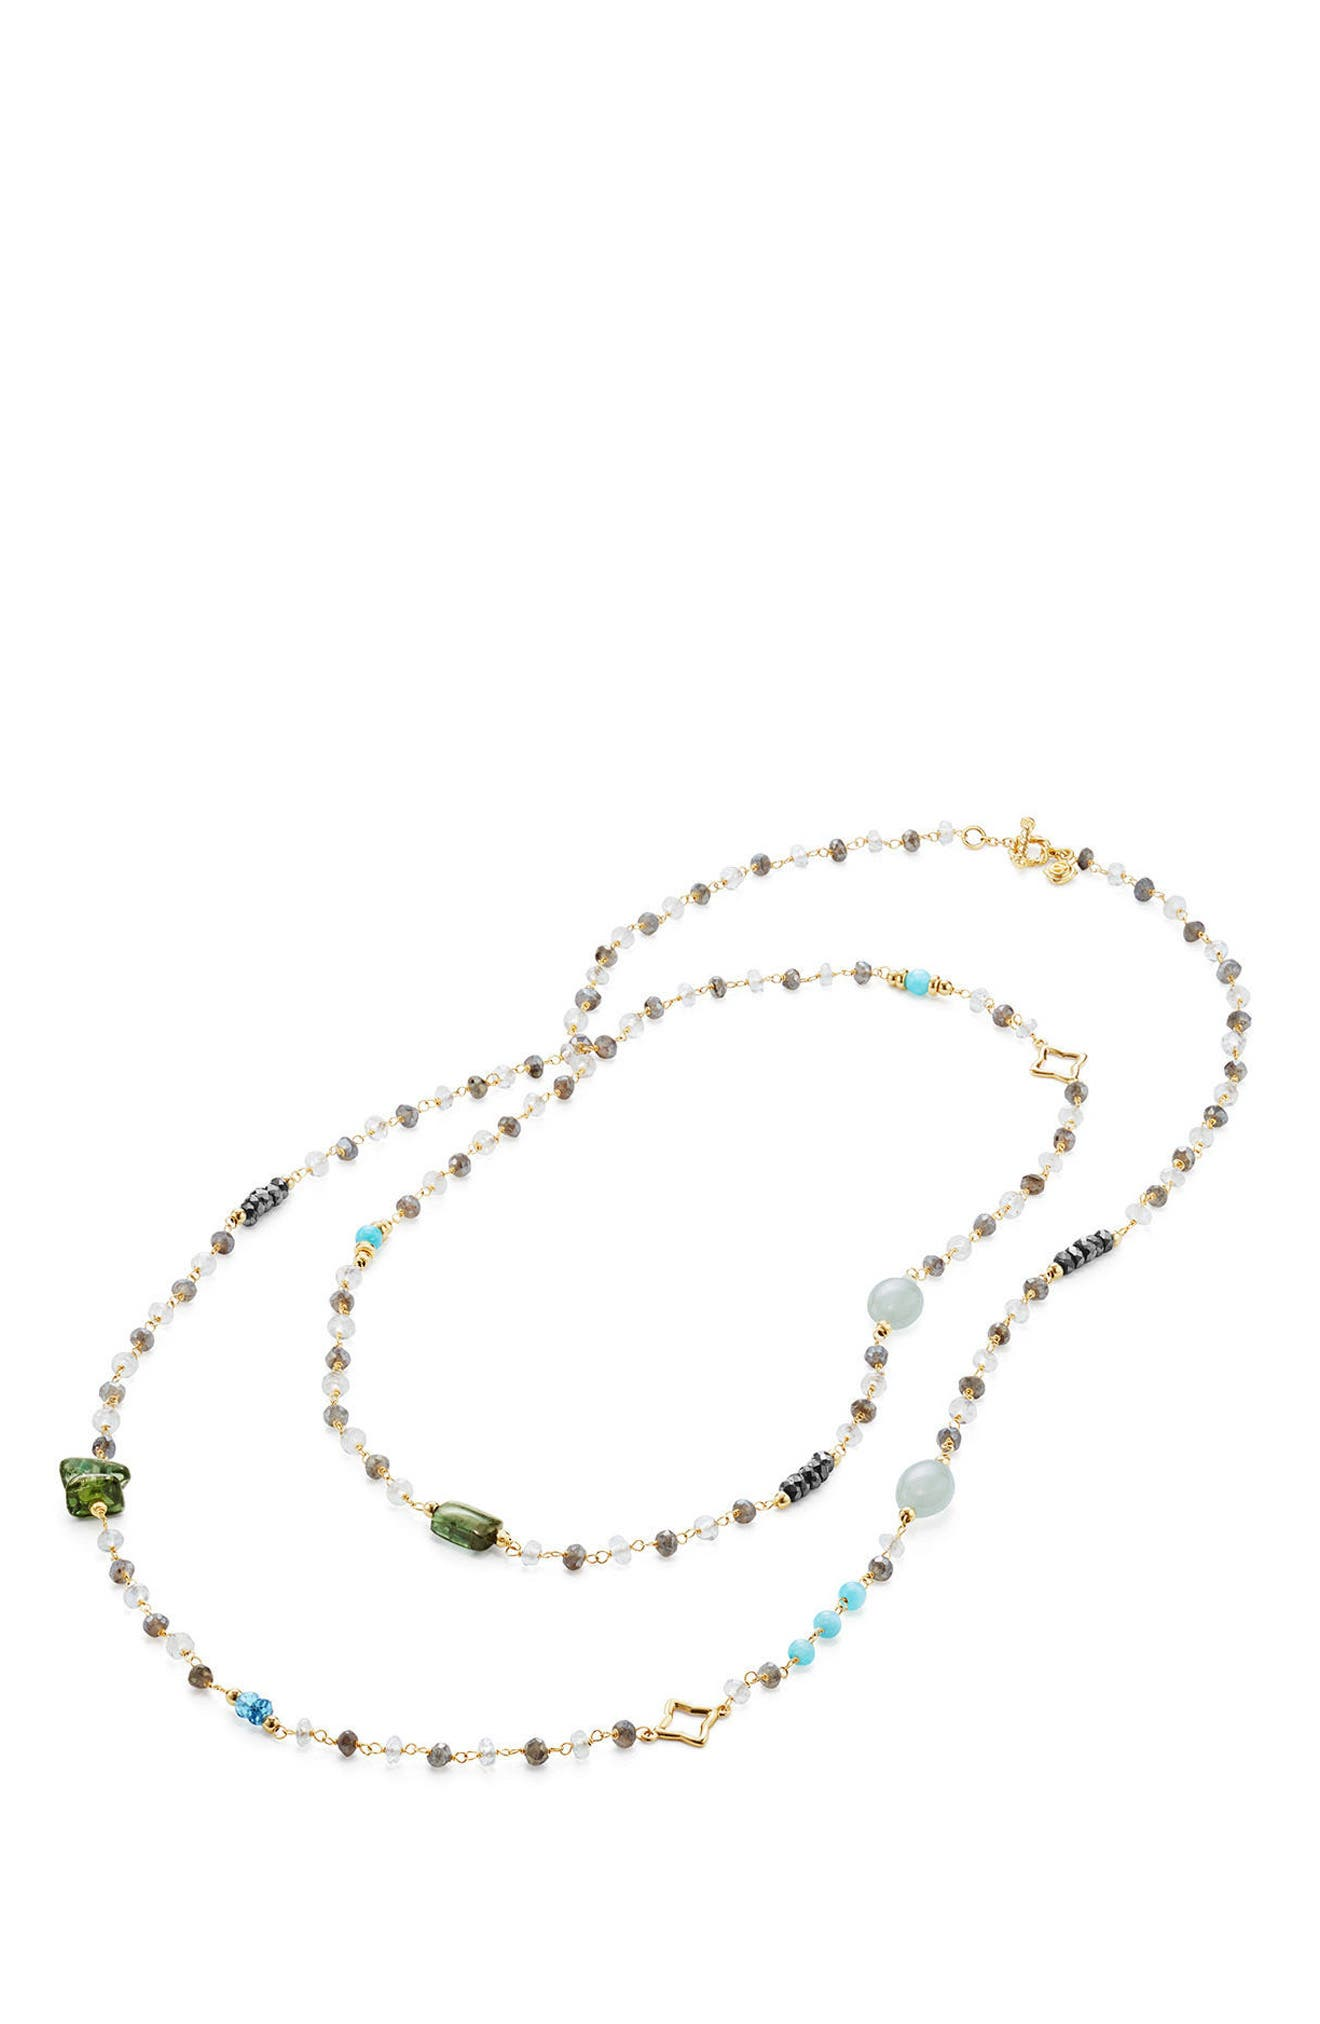 Long Bead & Chain Necklace with Semiprecious Stones in 18K Gold,                             Alternate thumbnail 2, color,                             MALACHITE